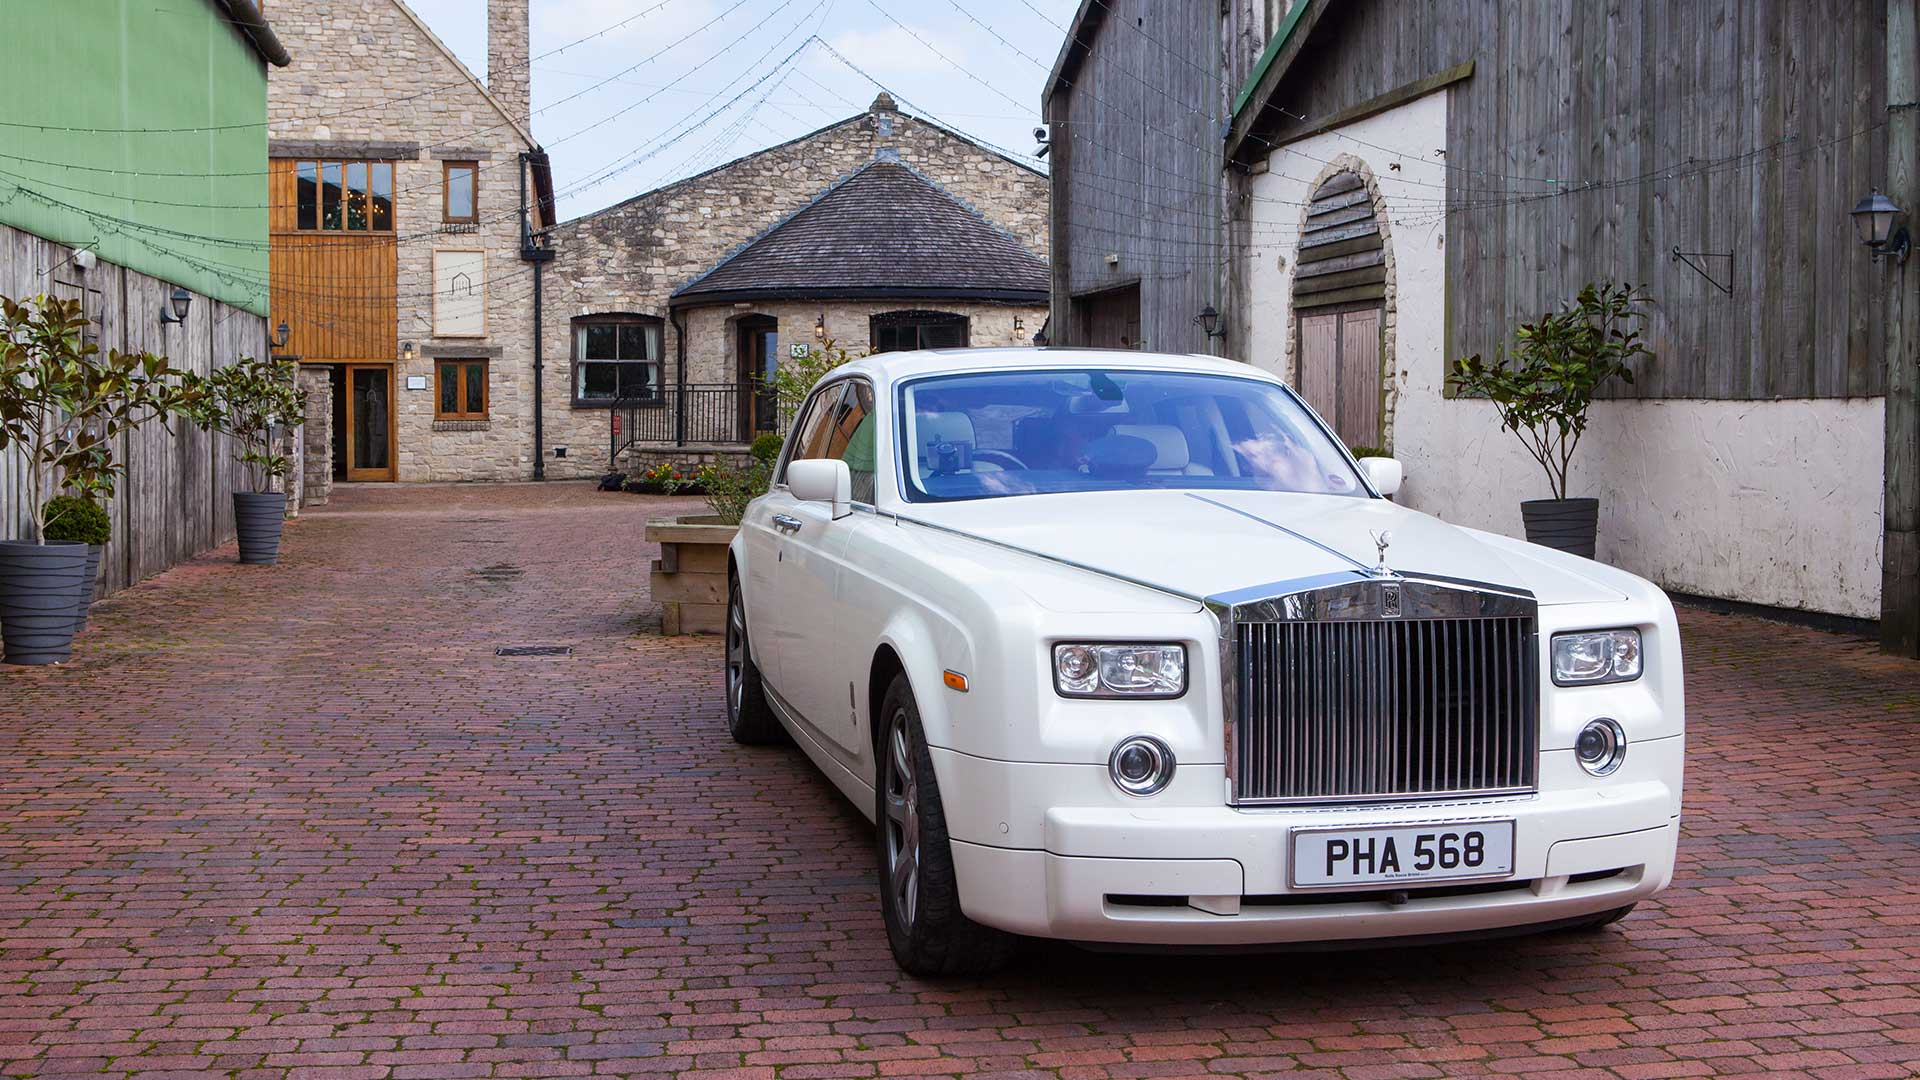 The Rolls-Royce Phantom wedding car in white